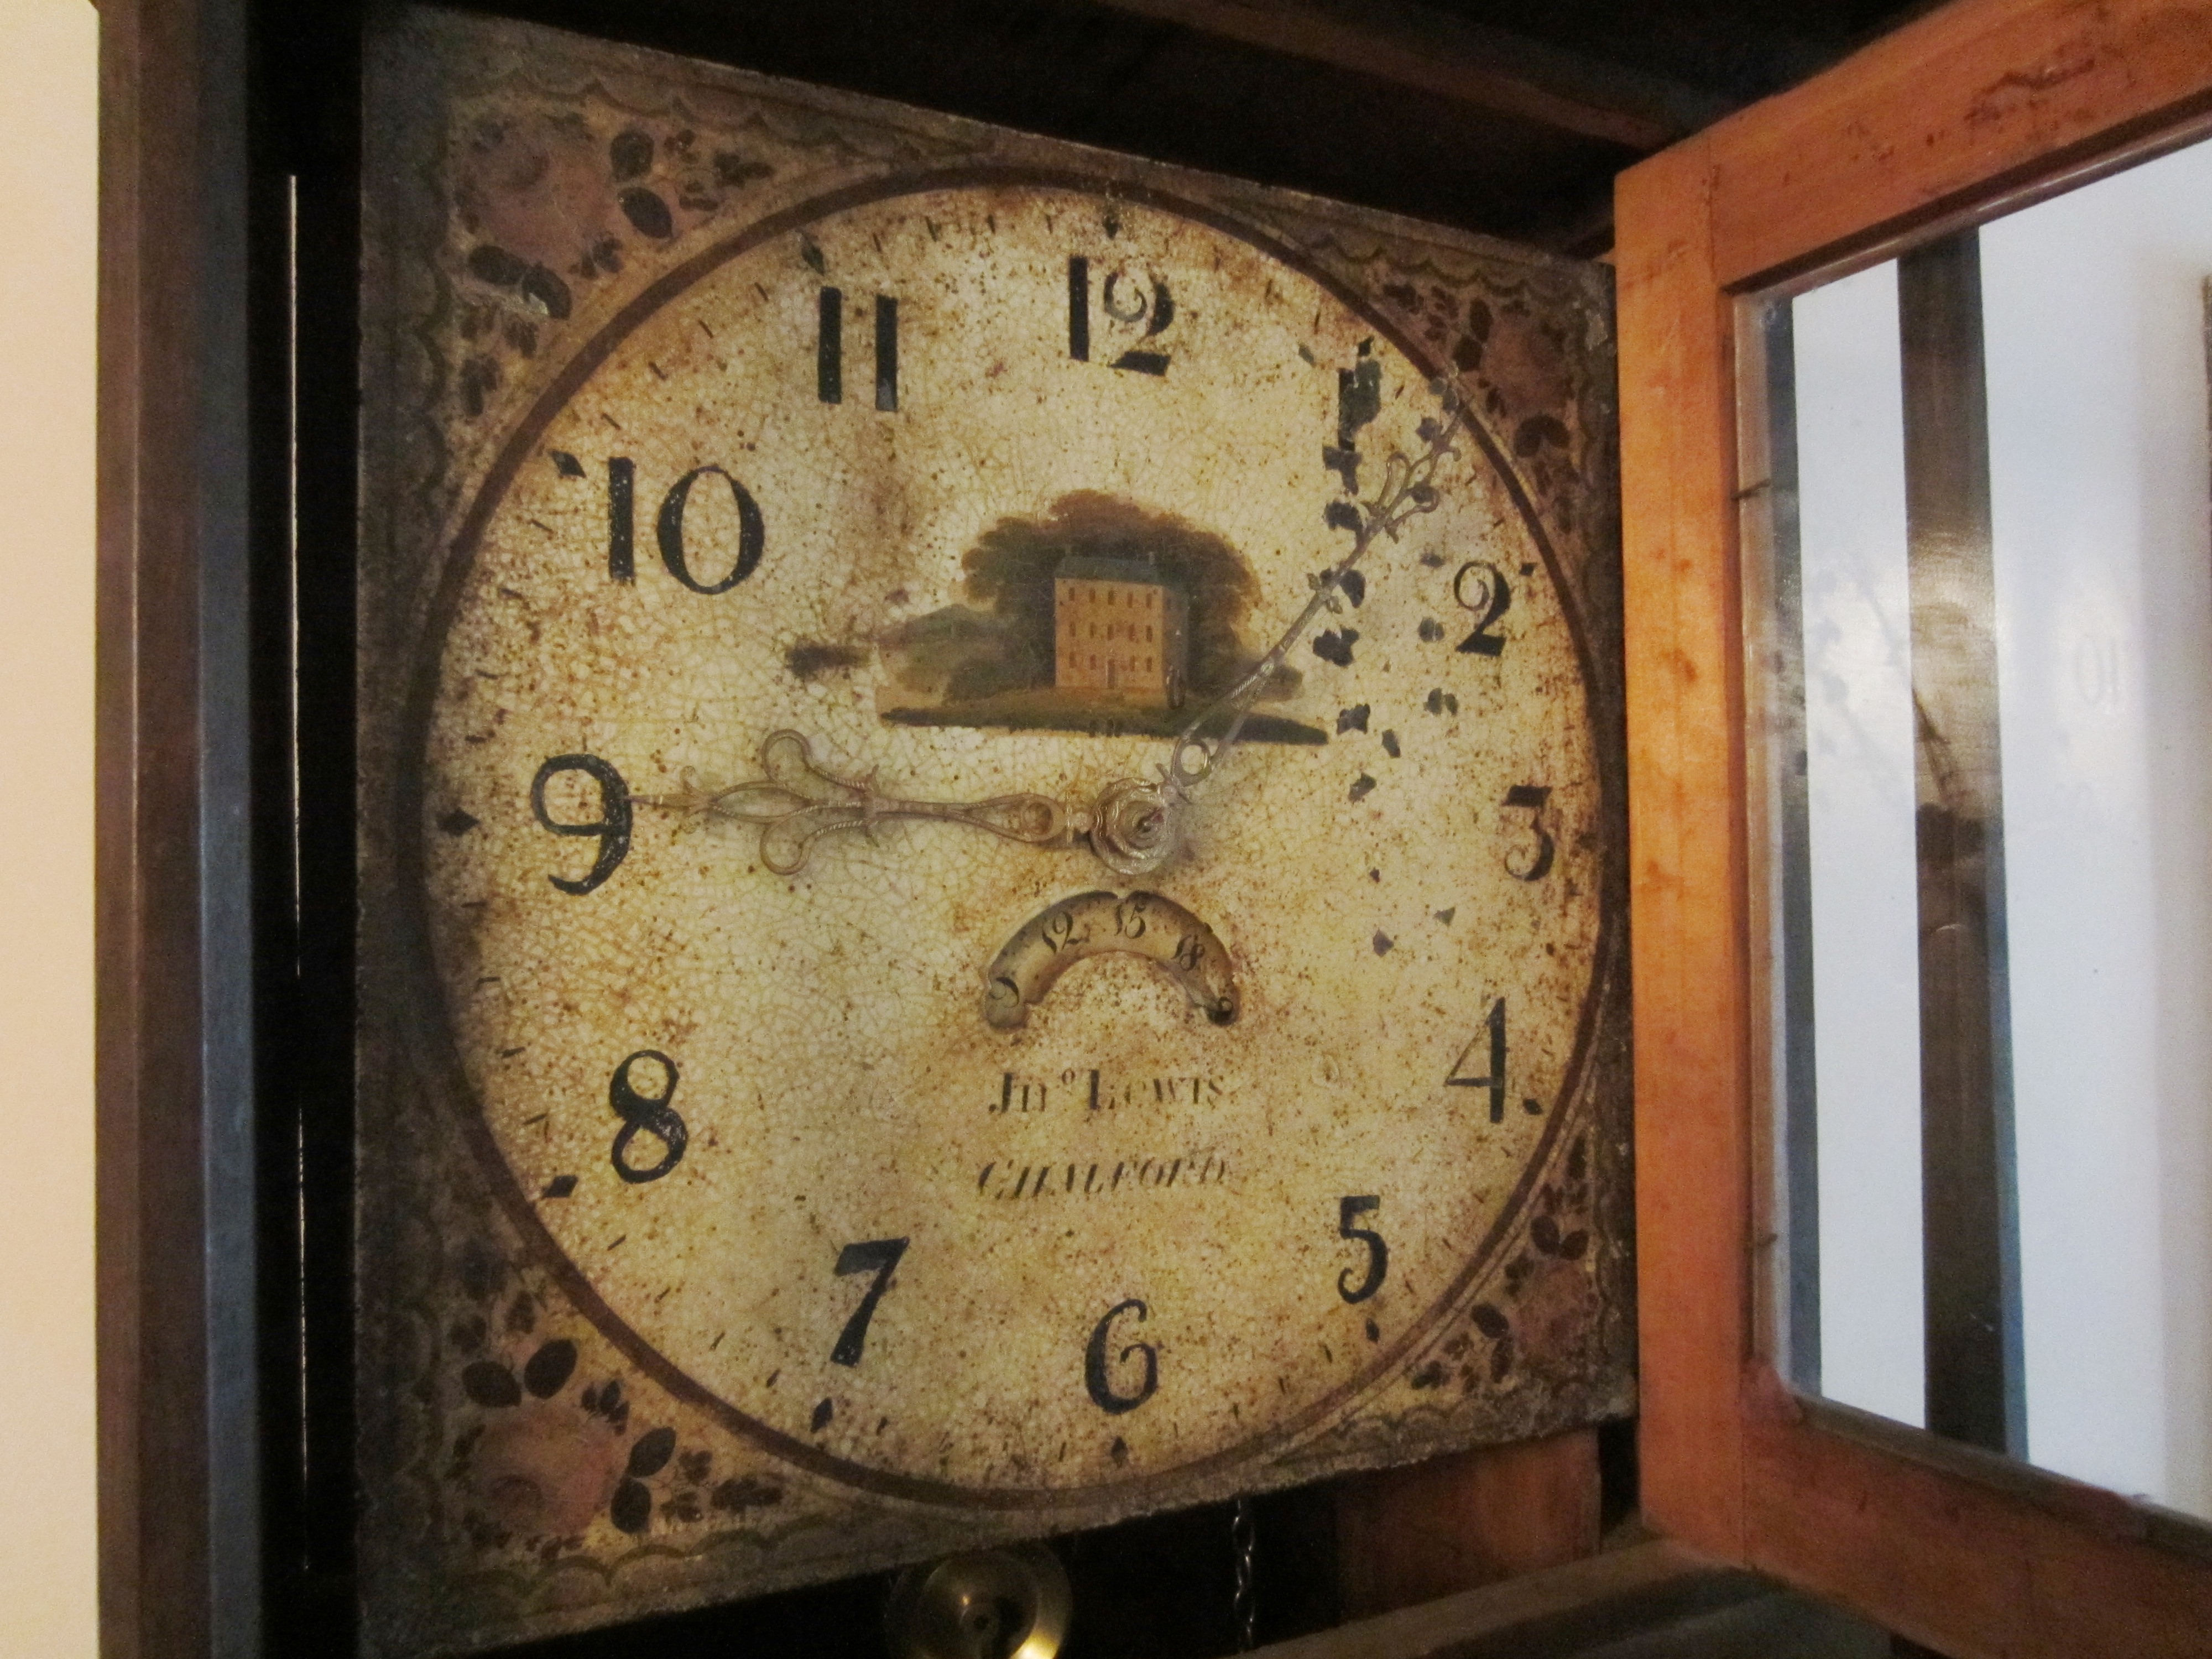 Close up of old clock face on grandfather clock